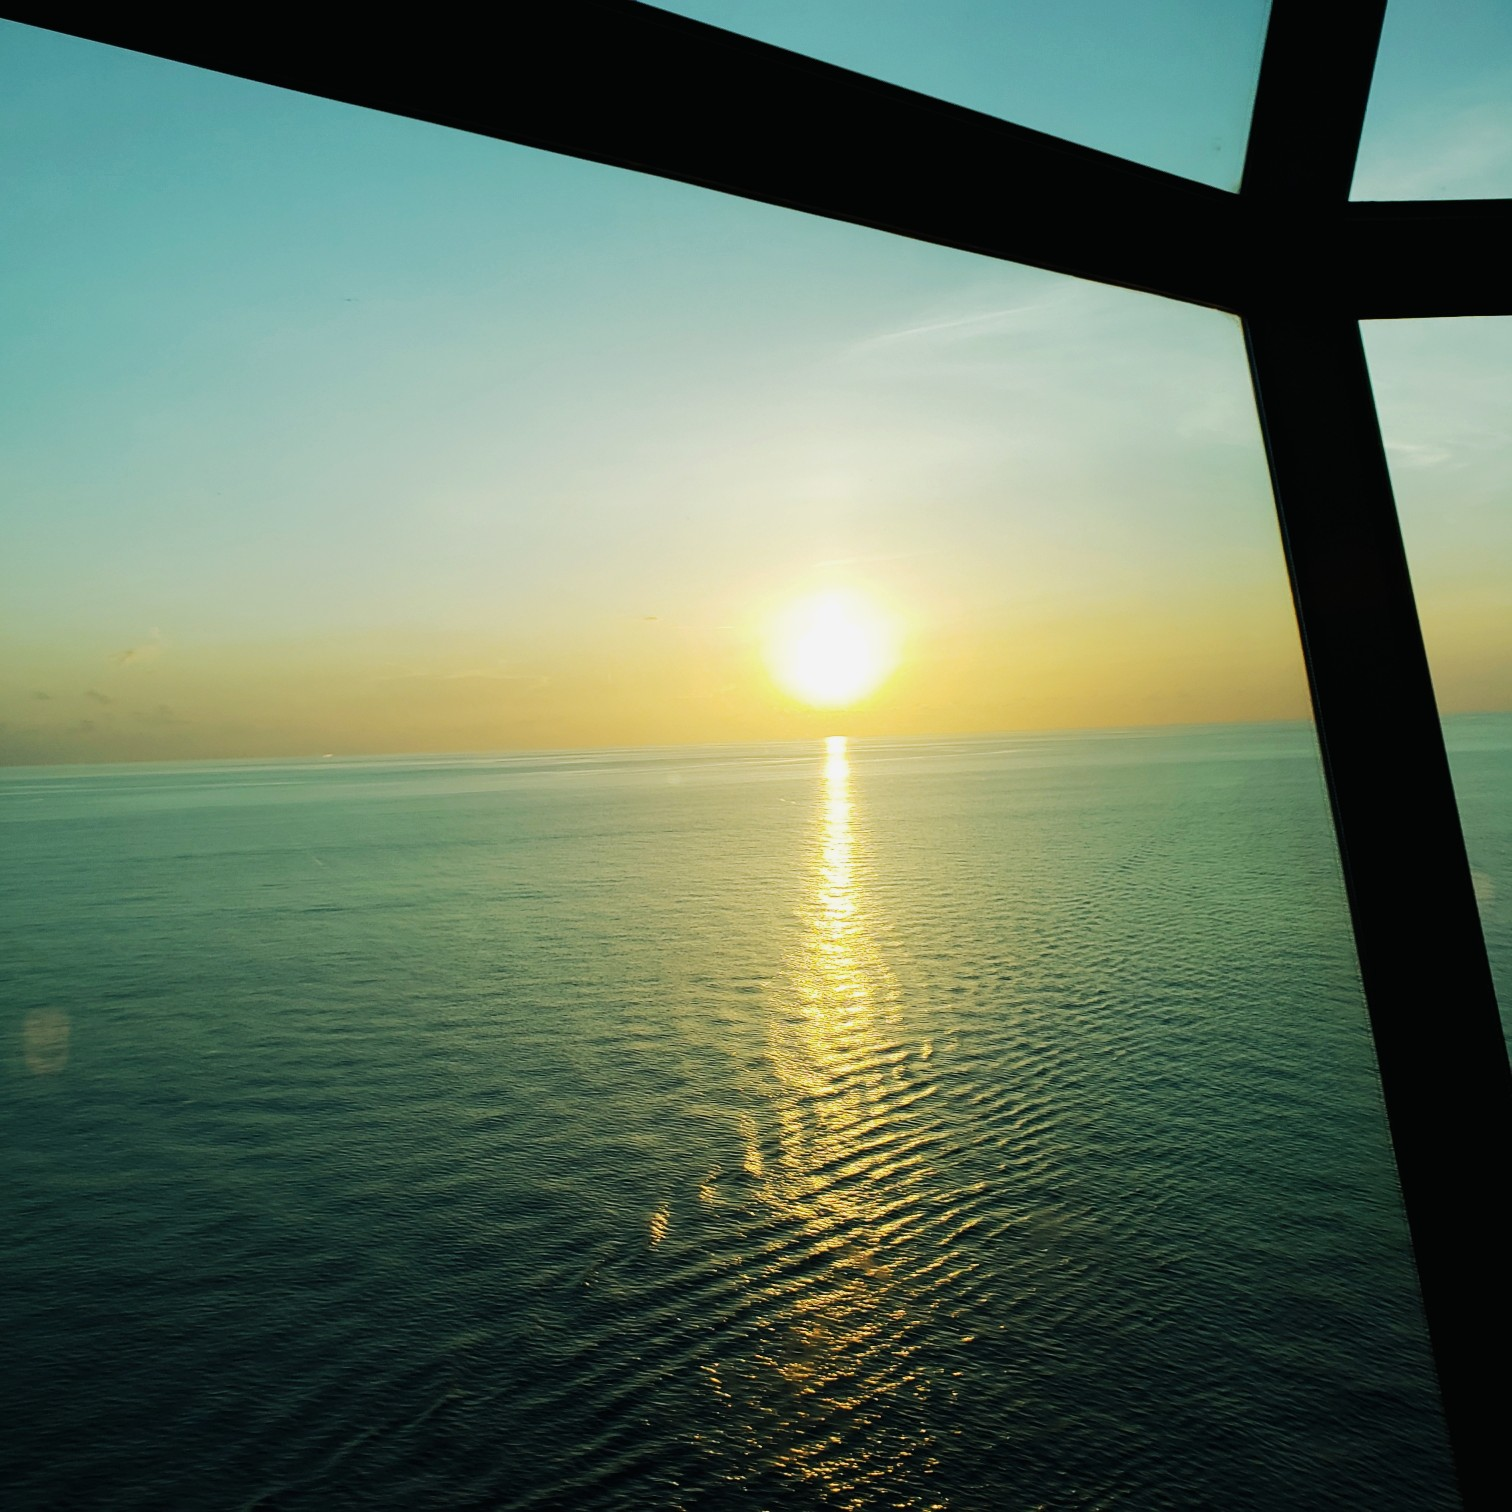 Sunset from Royal Caribbean Cruise